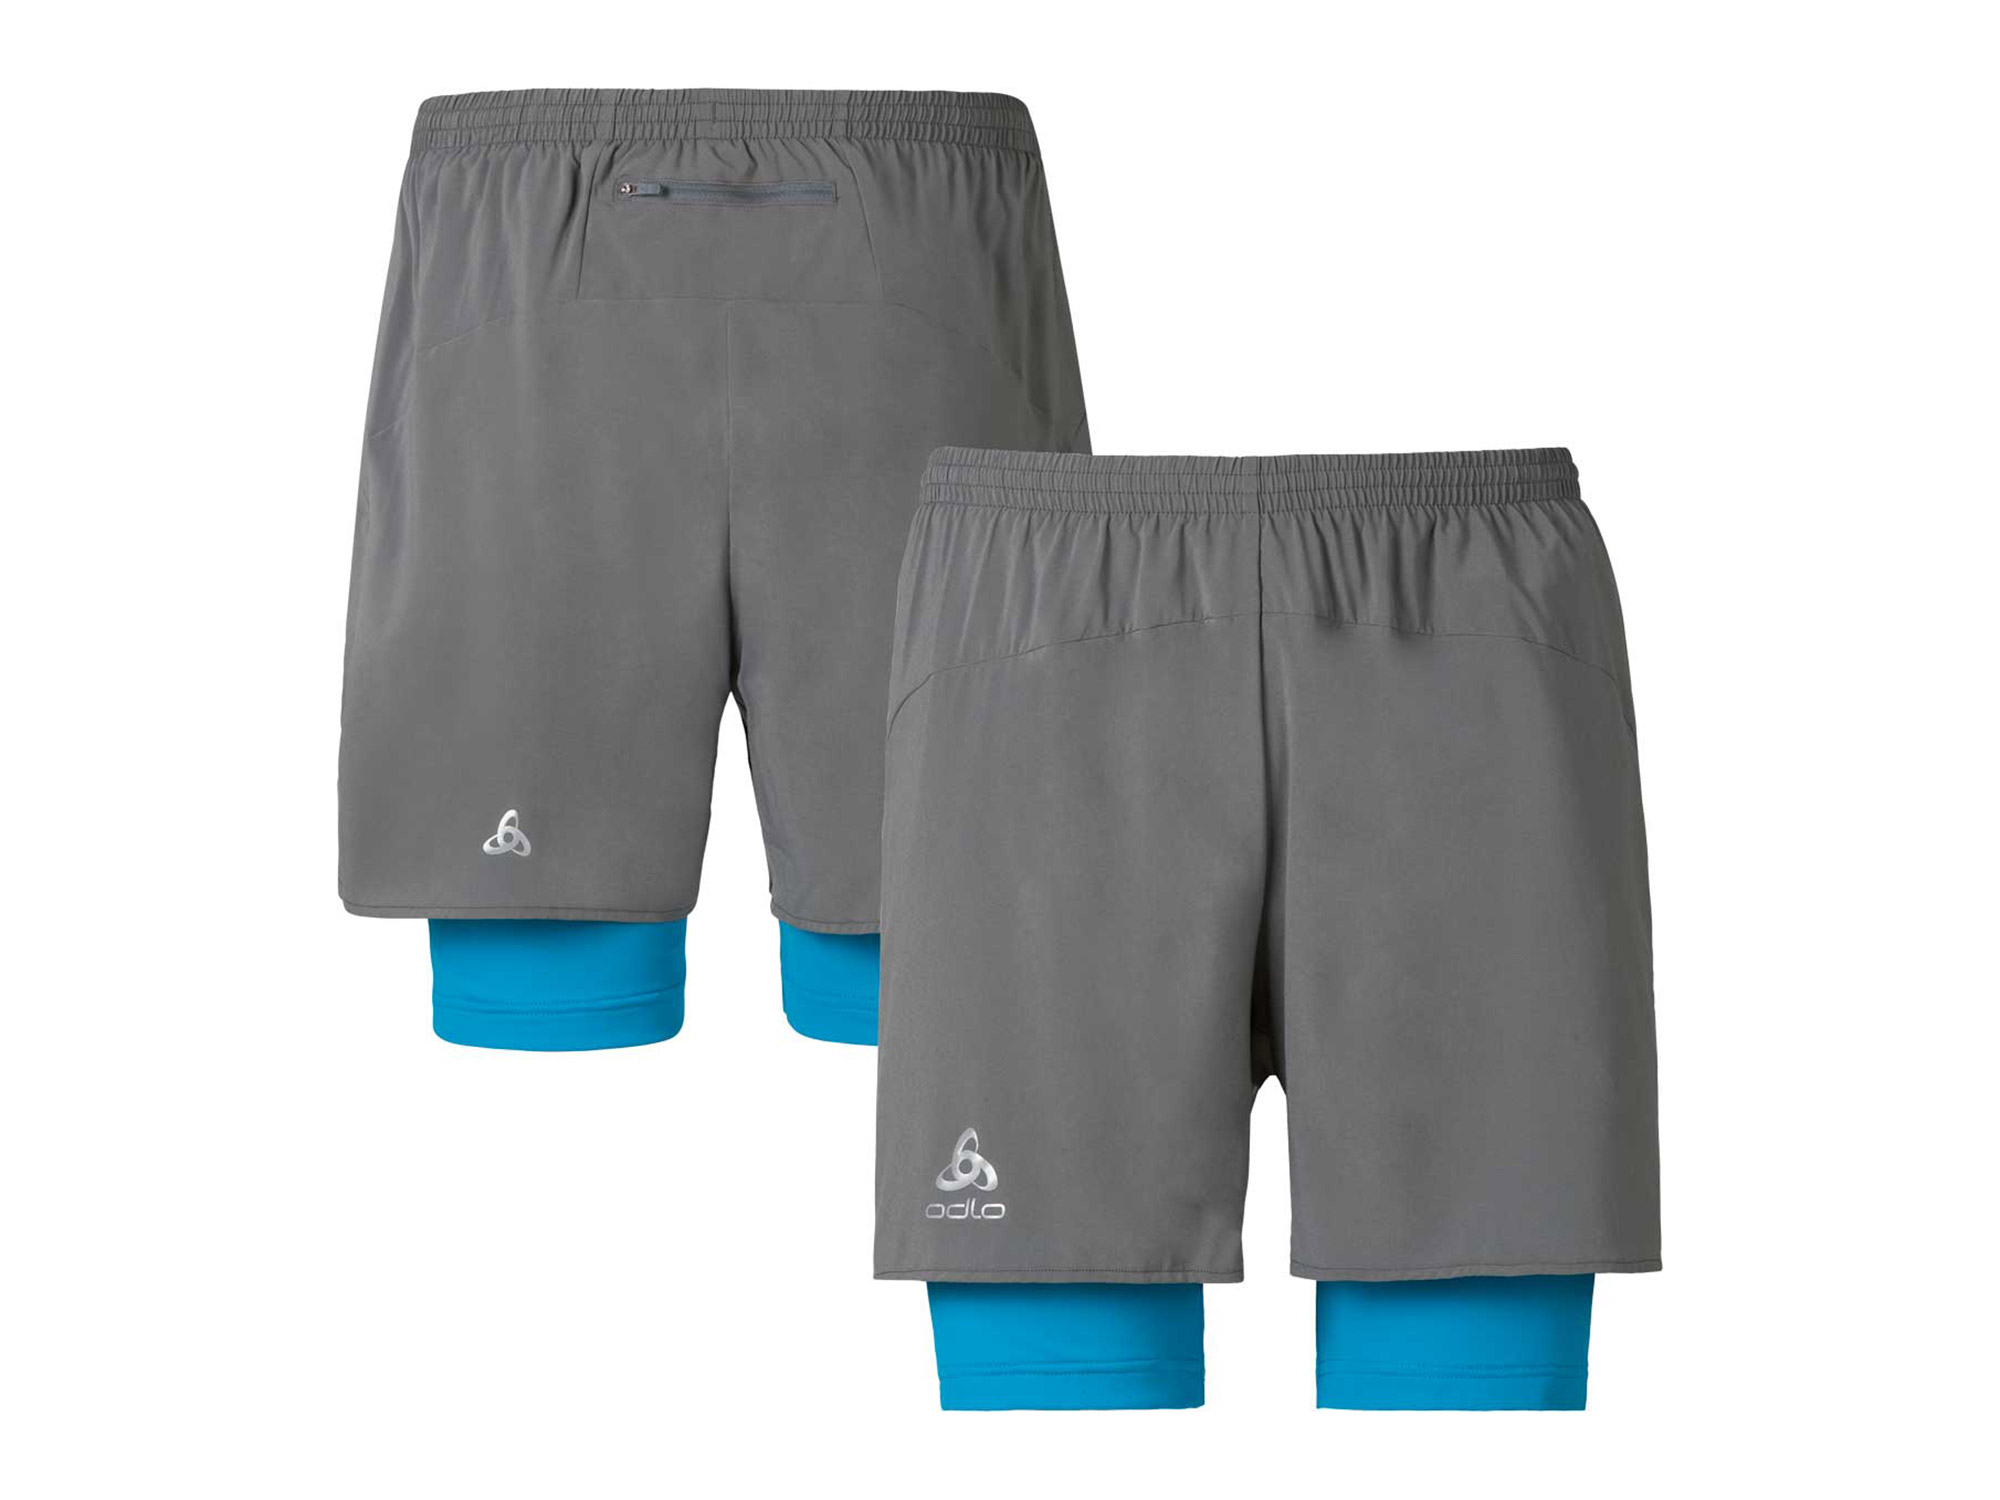 Odlo Kanon running shorts